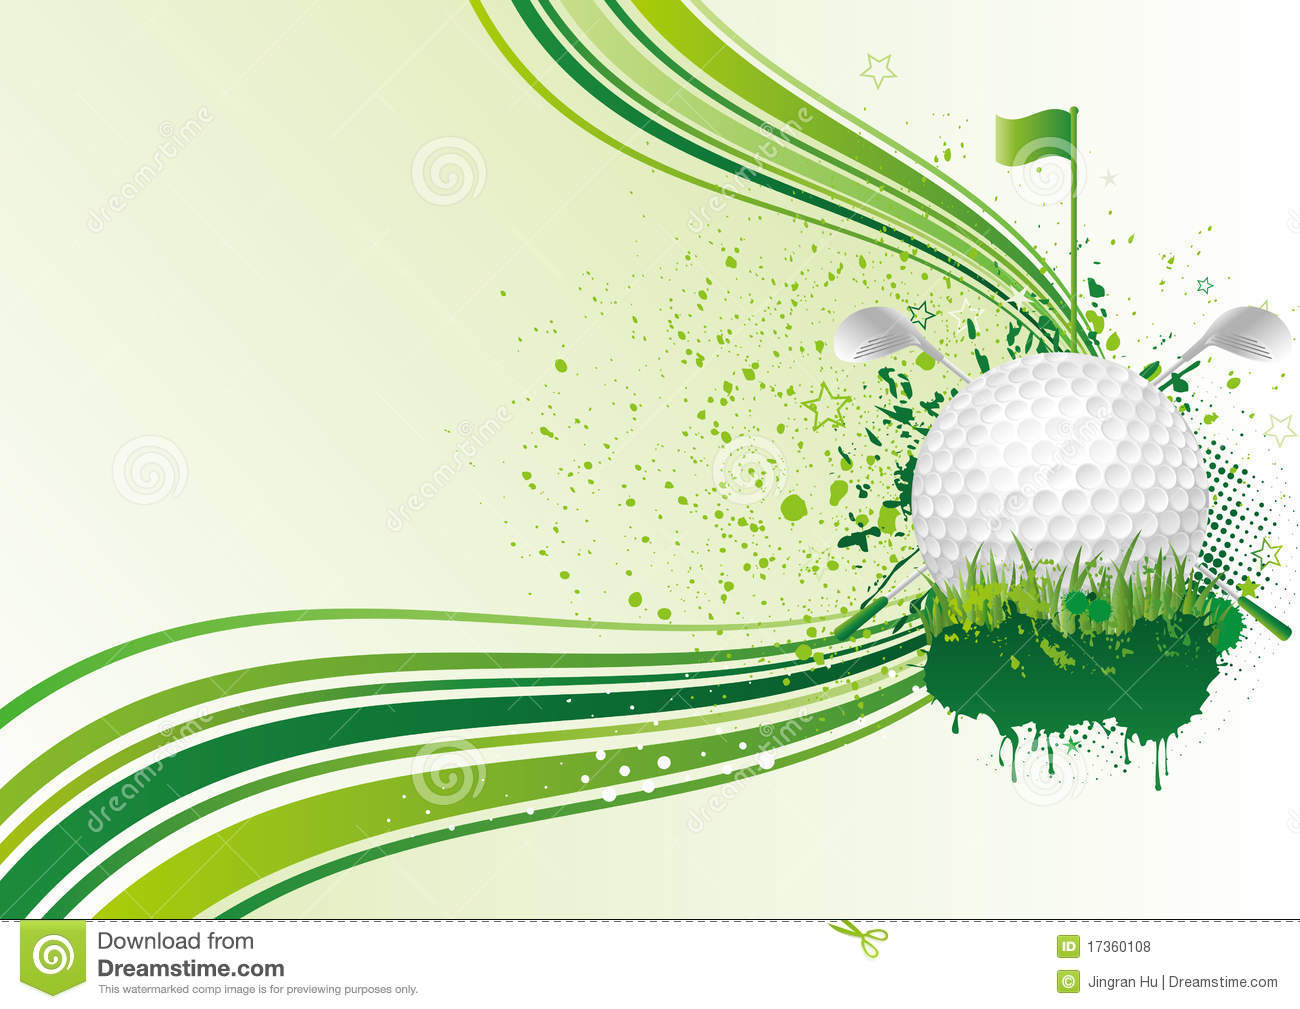 Golf Background Royalty Free Stock Photos - Image: 17360108